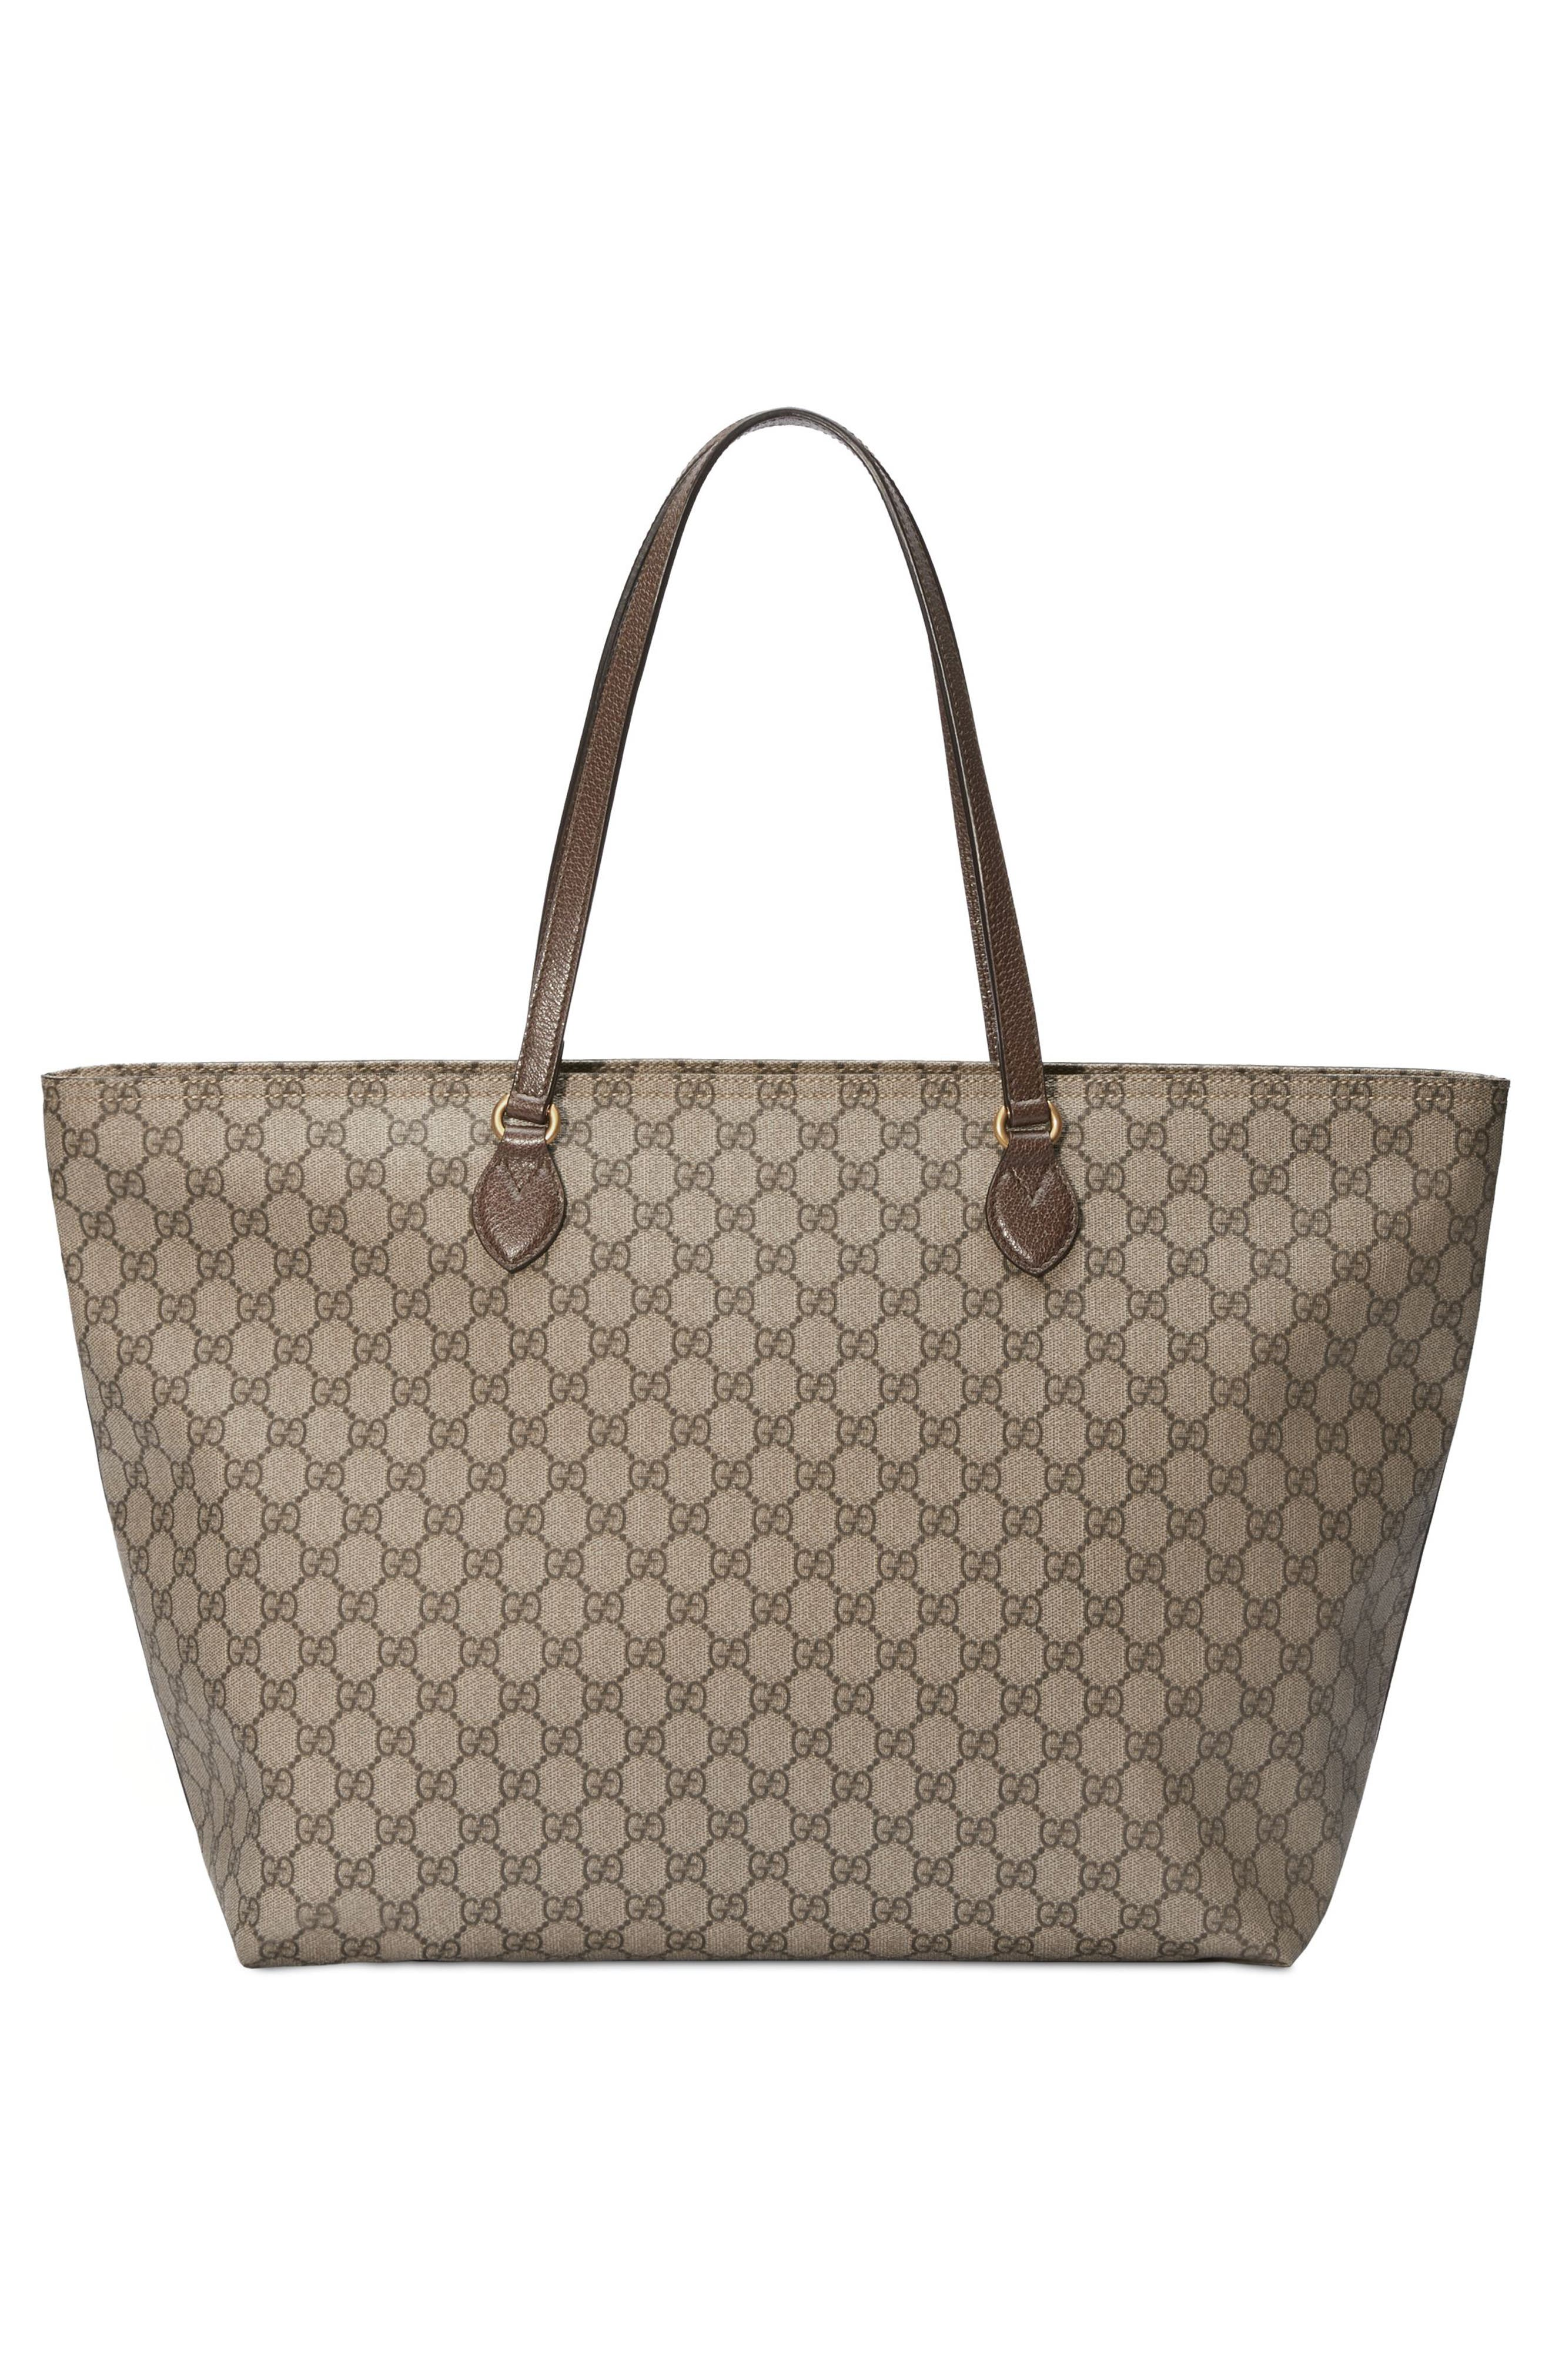 bcbe32c1d47a Gucci Tote Bags for Women: Leather, Coated Canvas, & Neoprene | Nordstrom